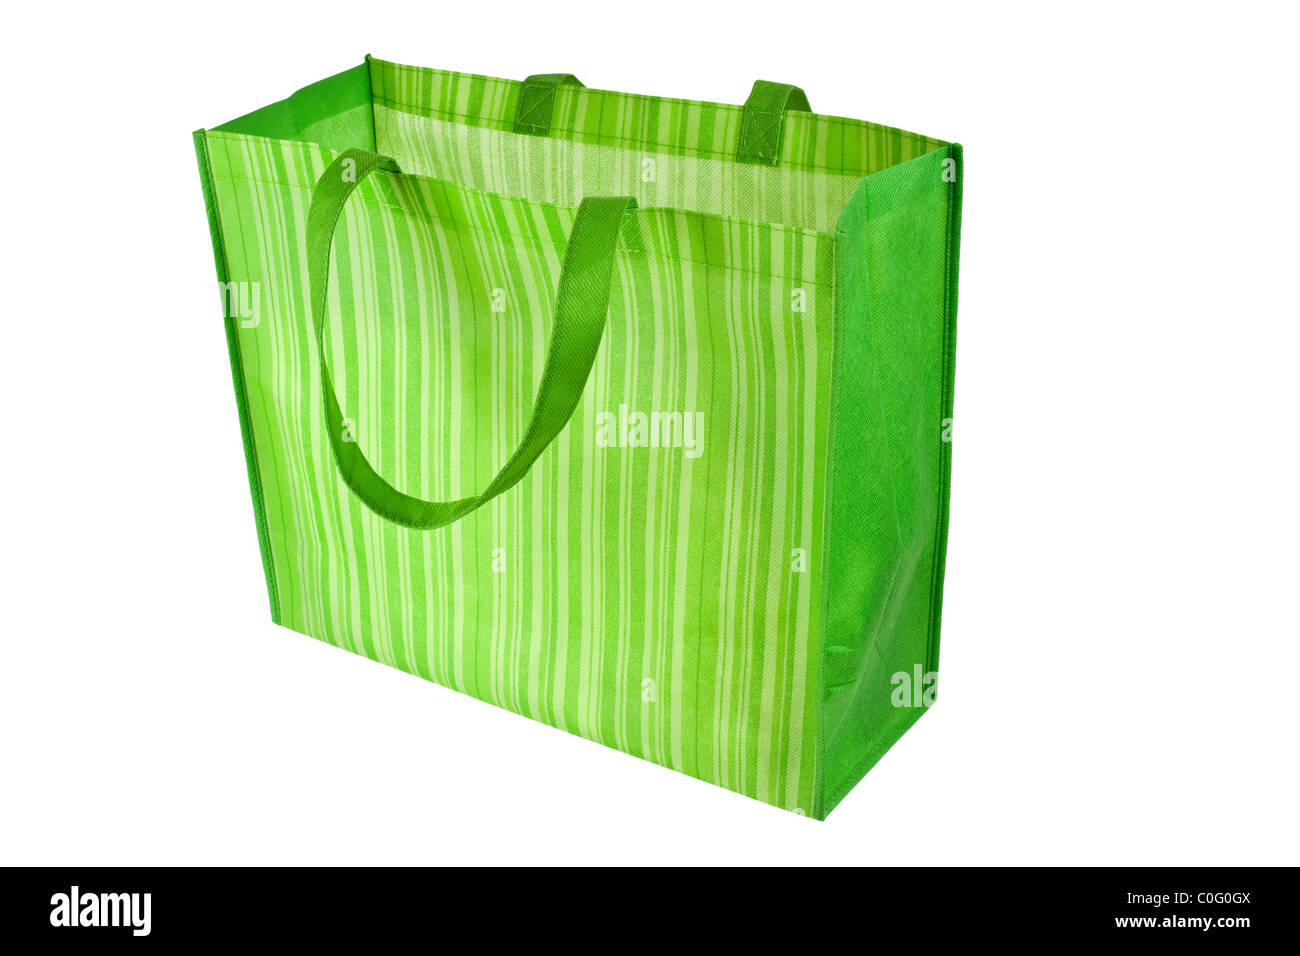 Empty green reusable shopping bag isolated on white background - Stock Image